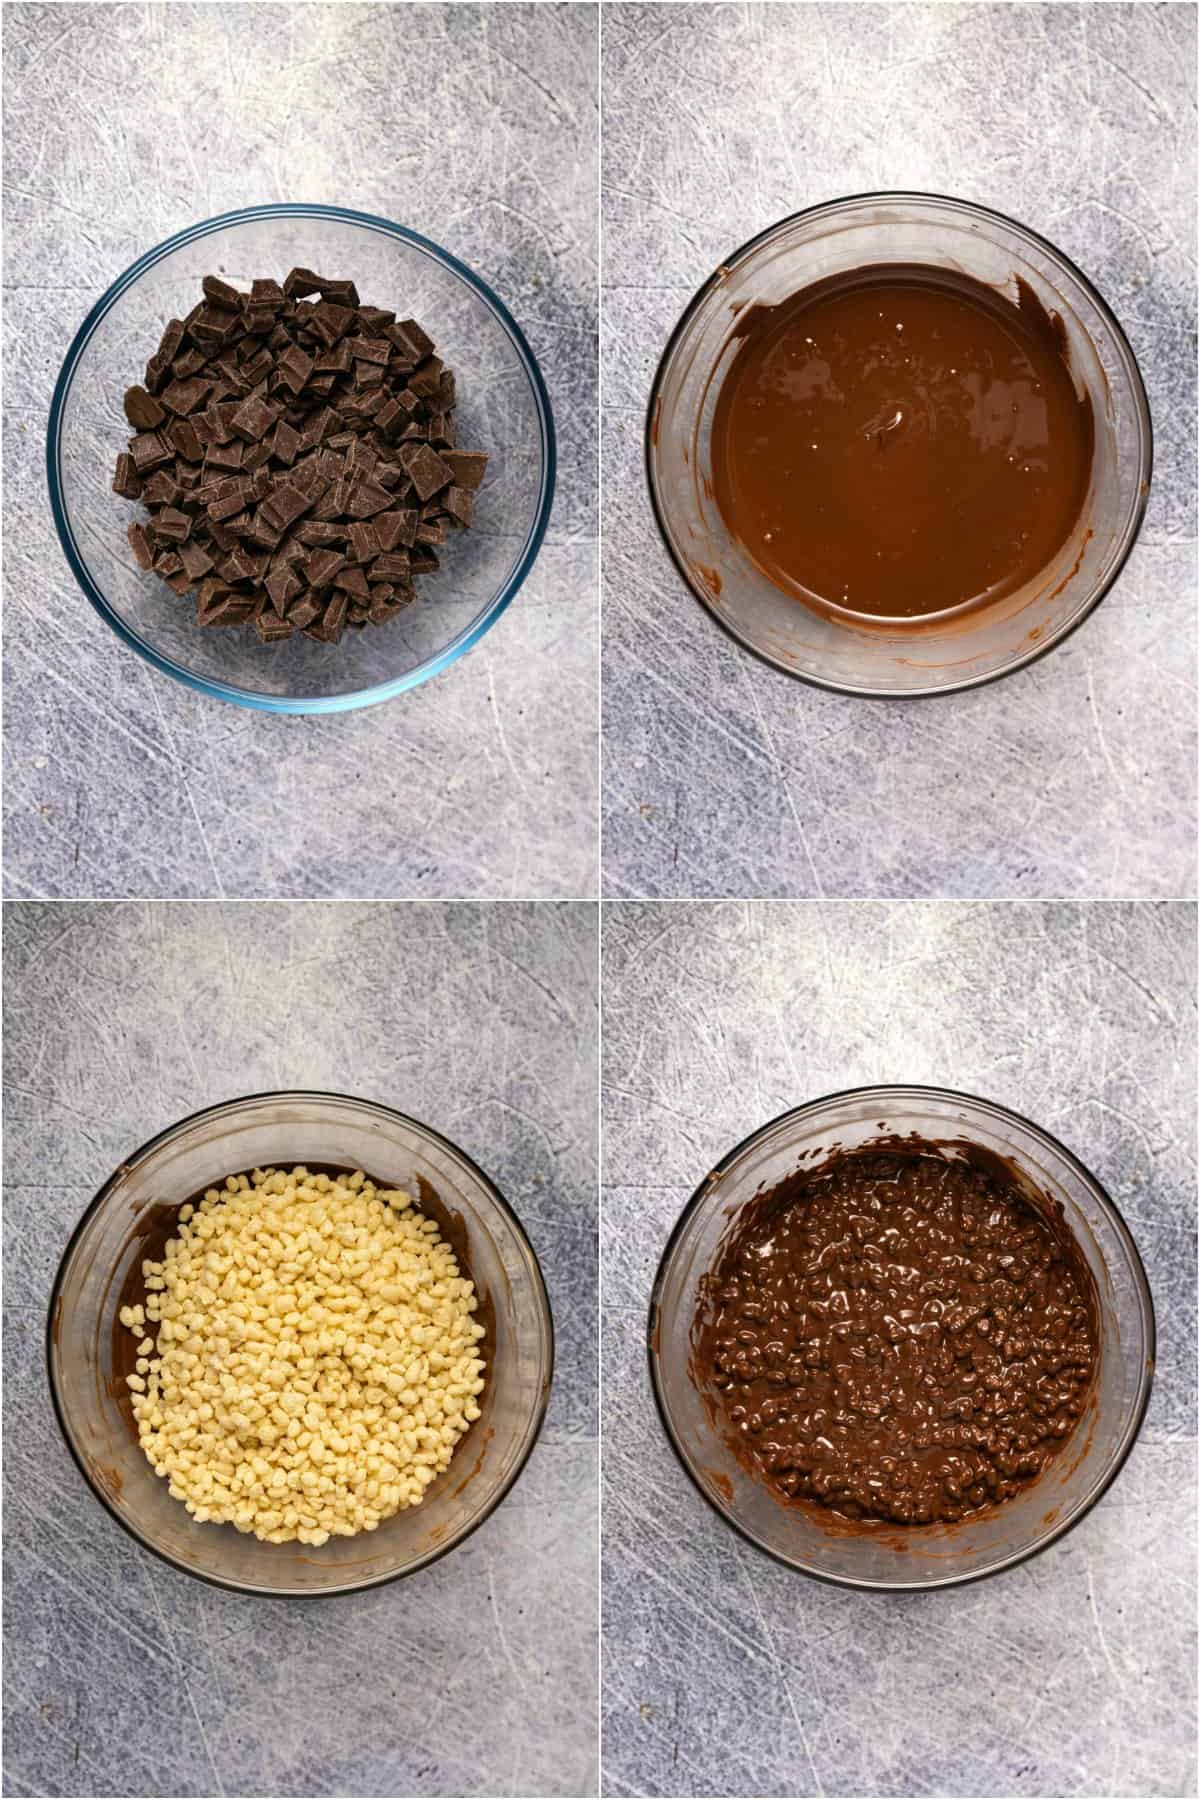 Step by step process photo collage of making crunch bars.